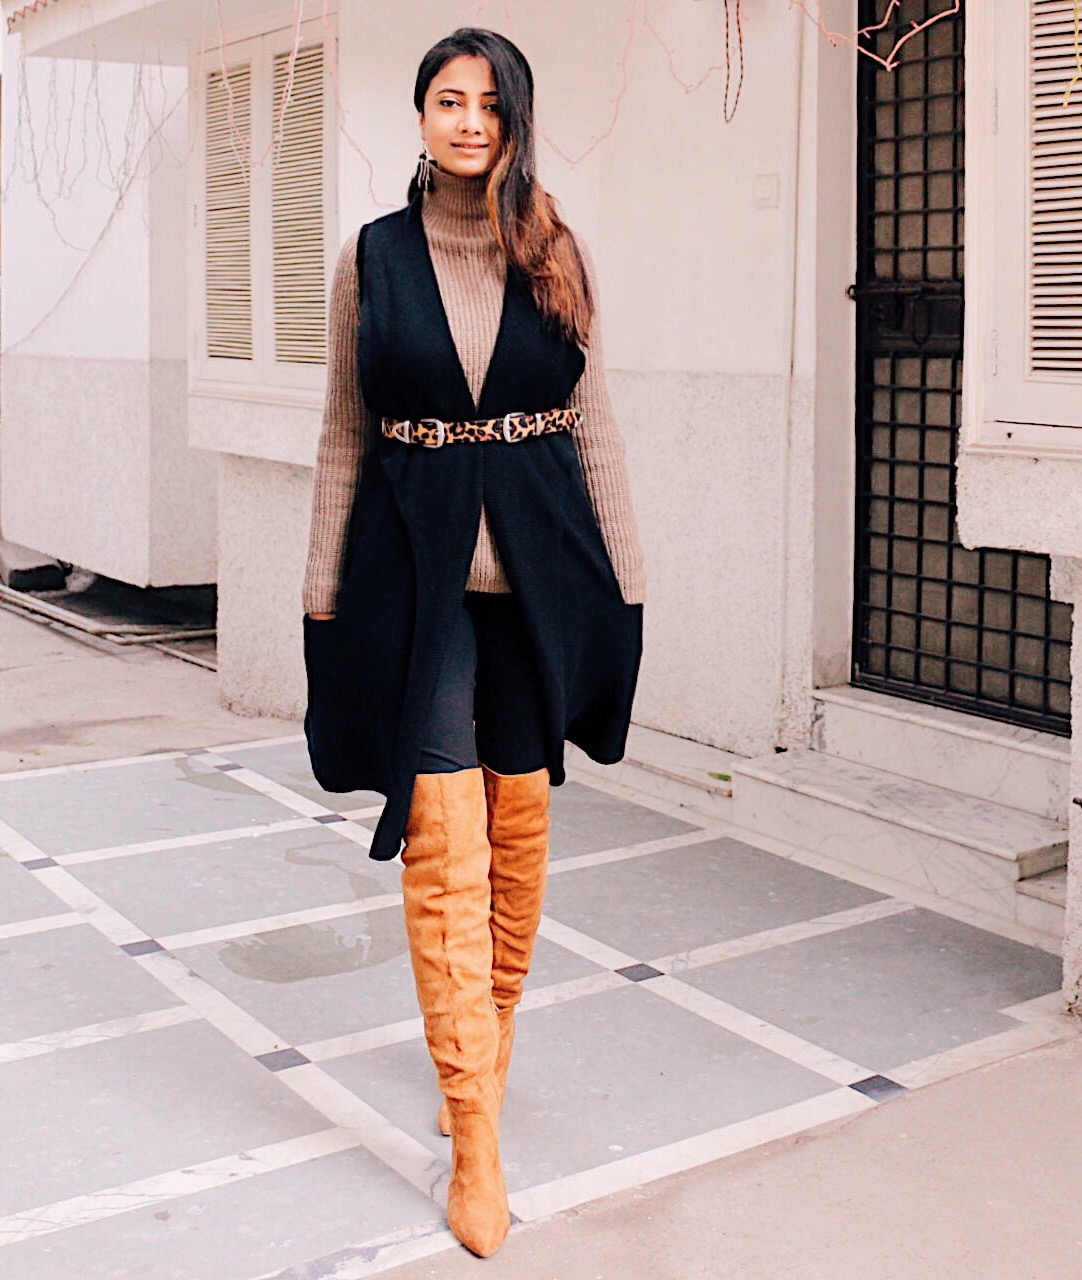 subtle ways to wear leopard print, over the knee boots, colors to wear with leopard, leopard pattern, leopard belt, uk blog, london blog, top indian blog, indian fashion blog, how to, wear leggings, winter outfit, winter fashion, 2017 winter outfits, top street style, 2017 blogger outfit, european style, london street style, minimal chic, how to wear leopard, city girl outfit, style over the knee boots, brown otk,